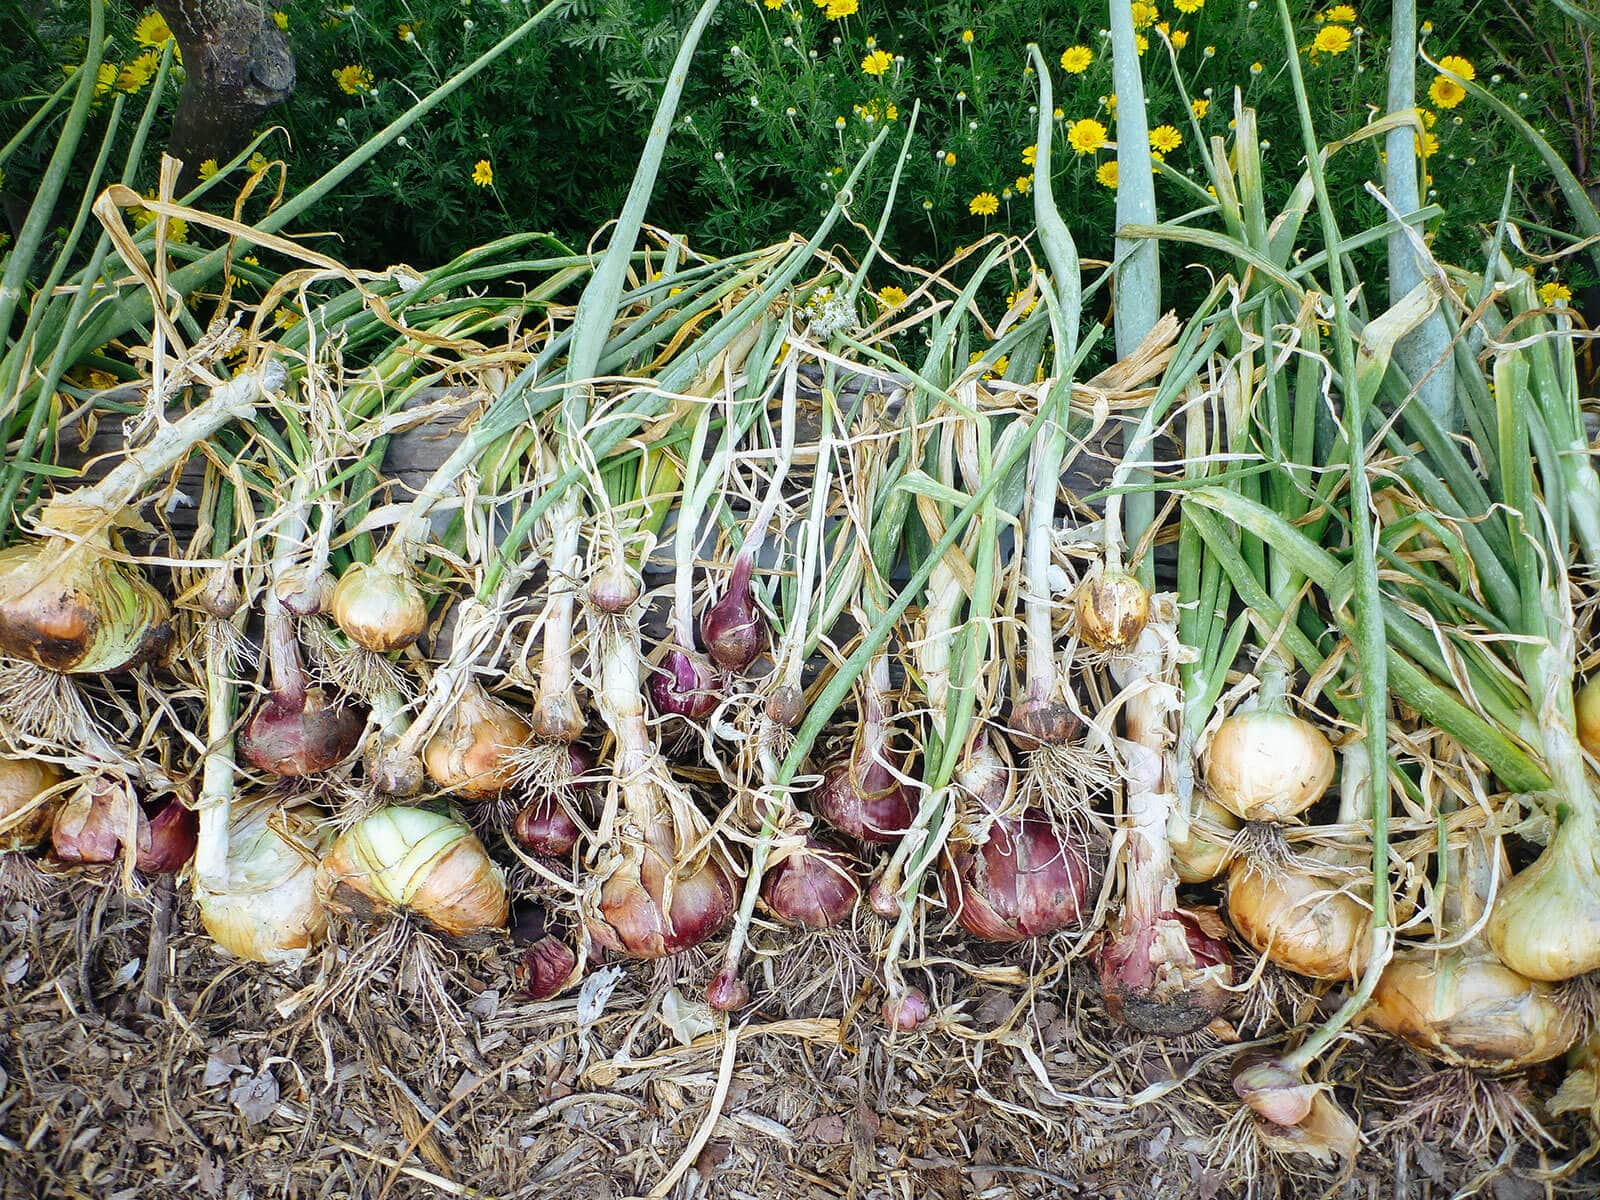 Freshly picked onions spread out on the ground